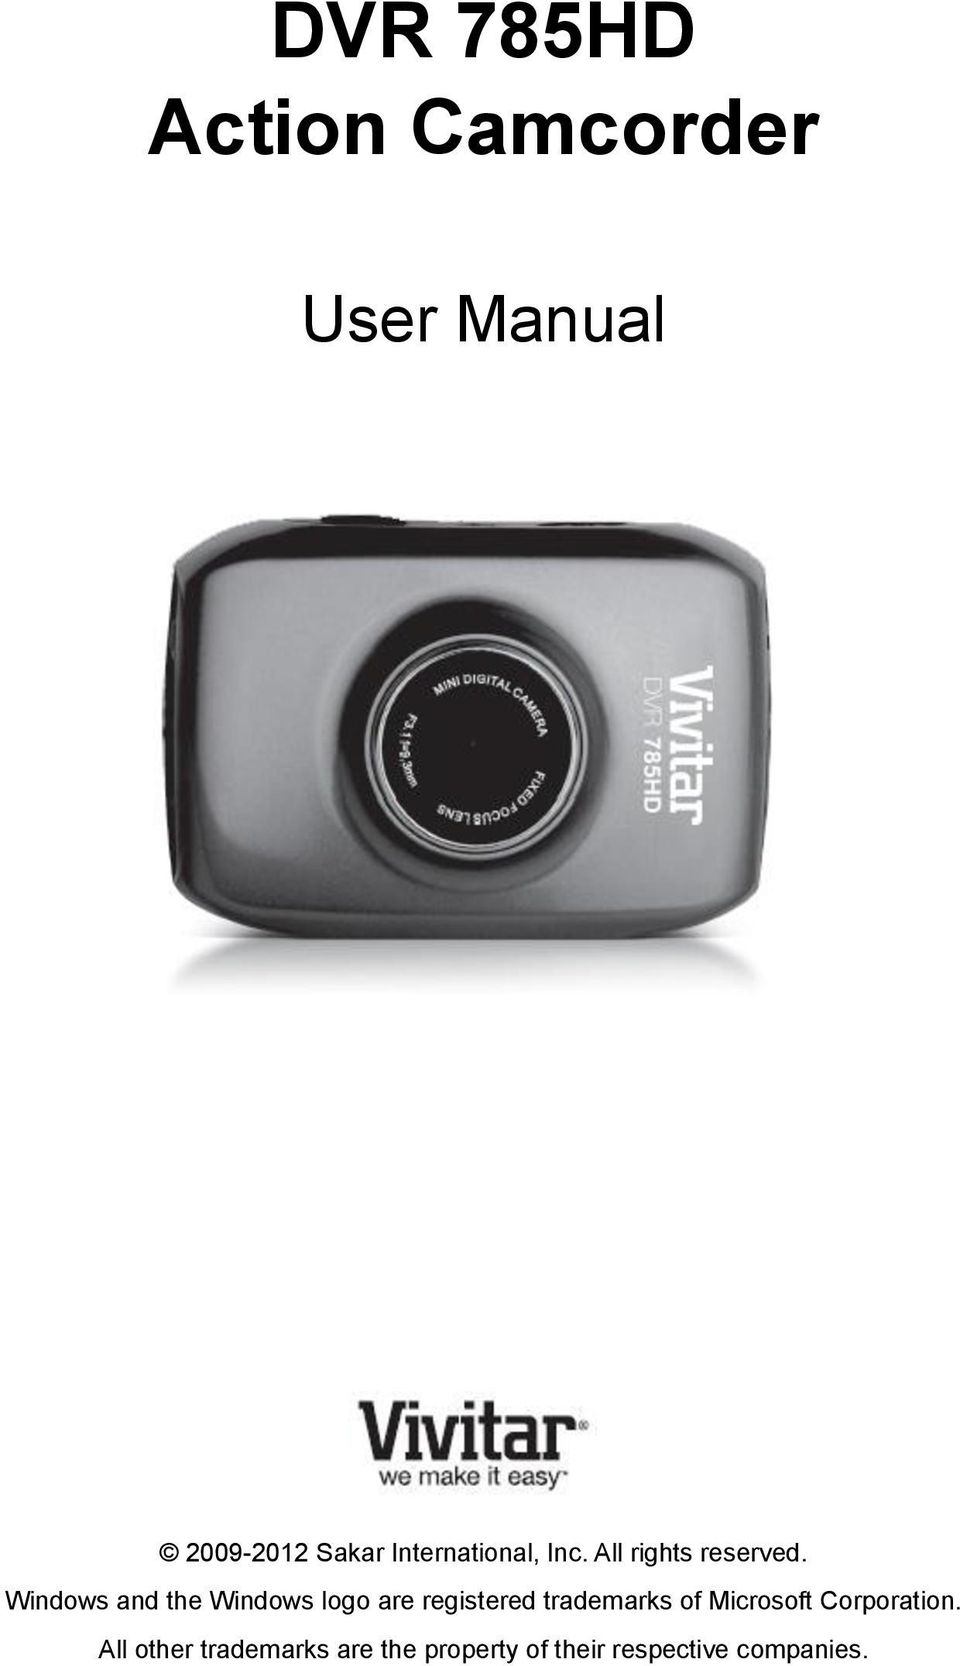 dvr 785hd action camcorder pdf